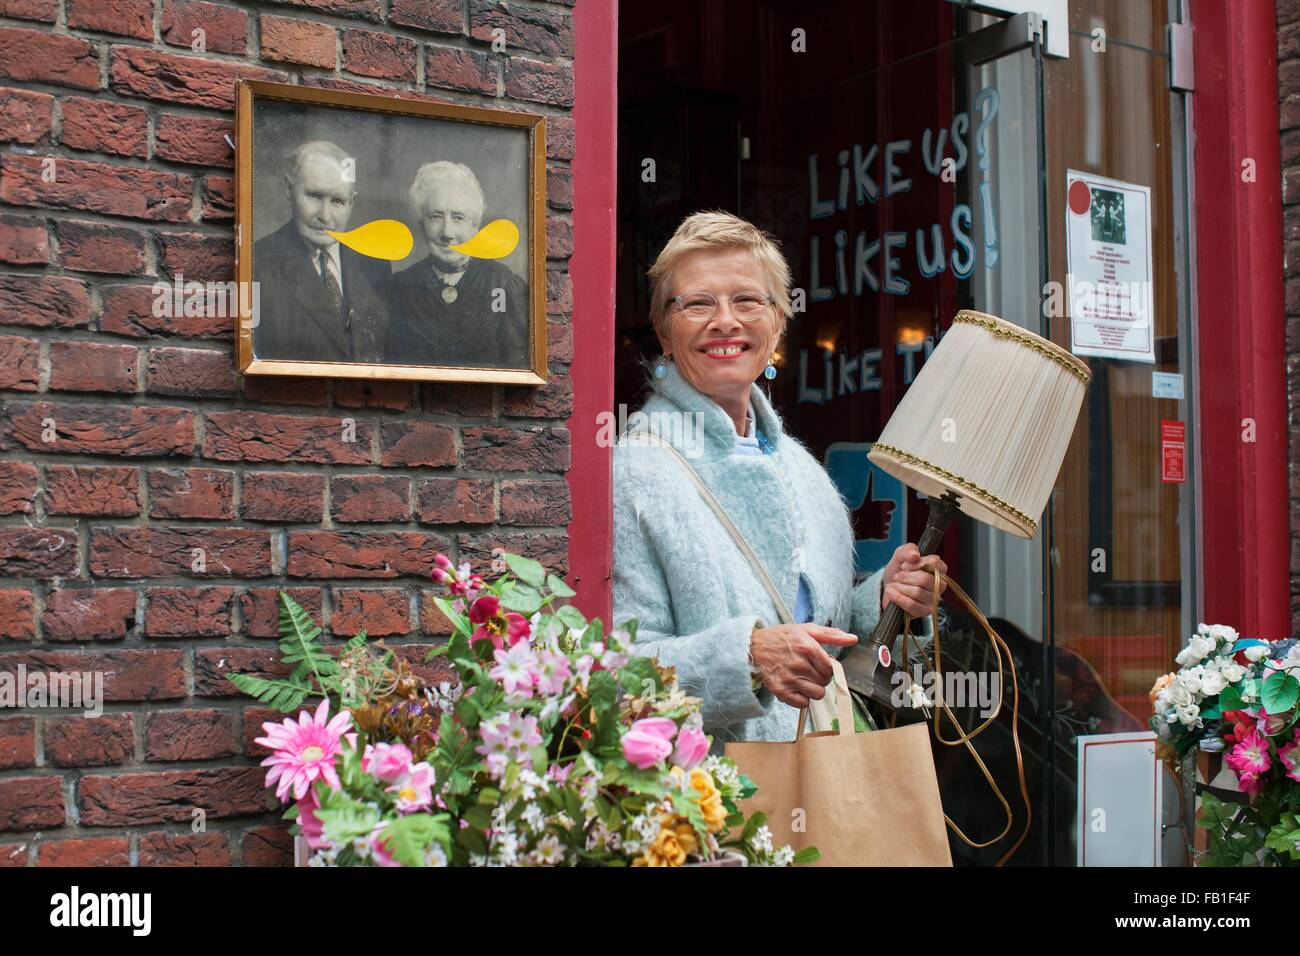 Mature female customer carrying lamp and shopping bag outside vintage shop - Stock Image